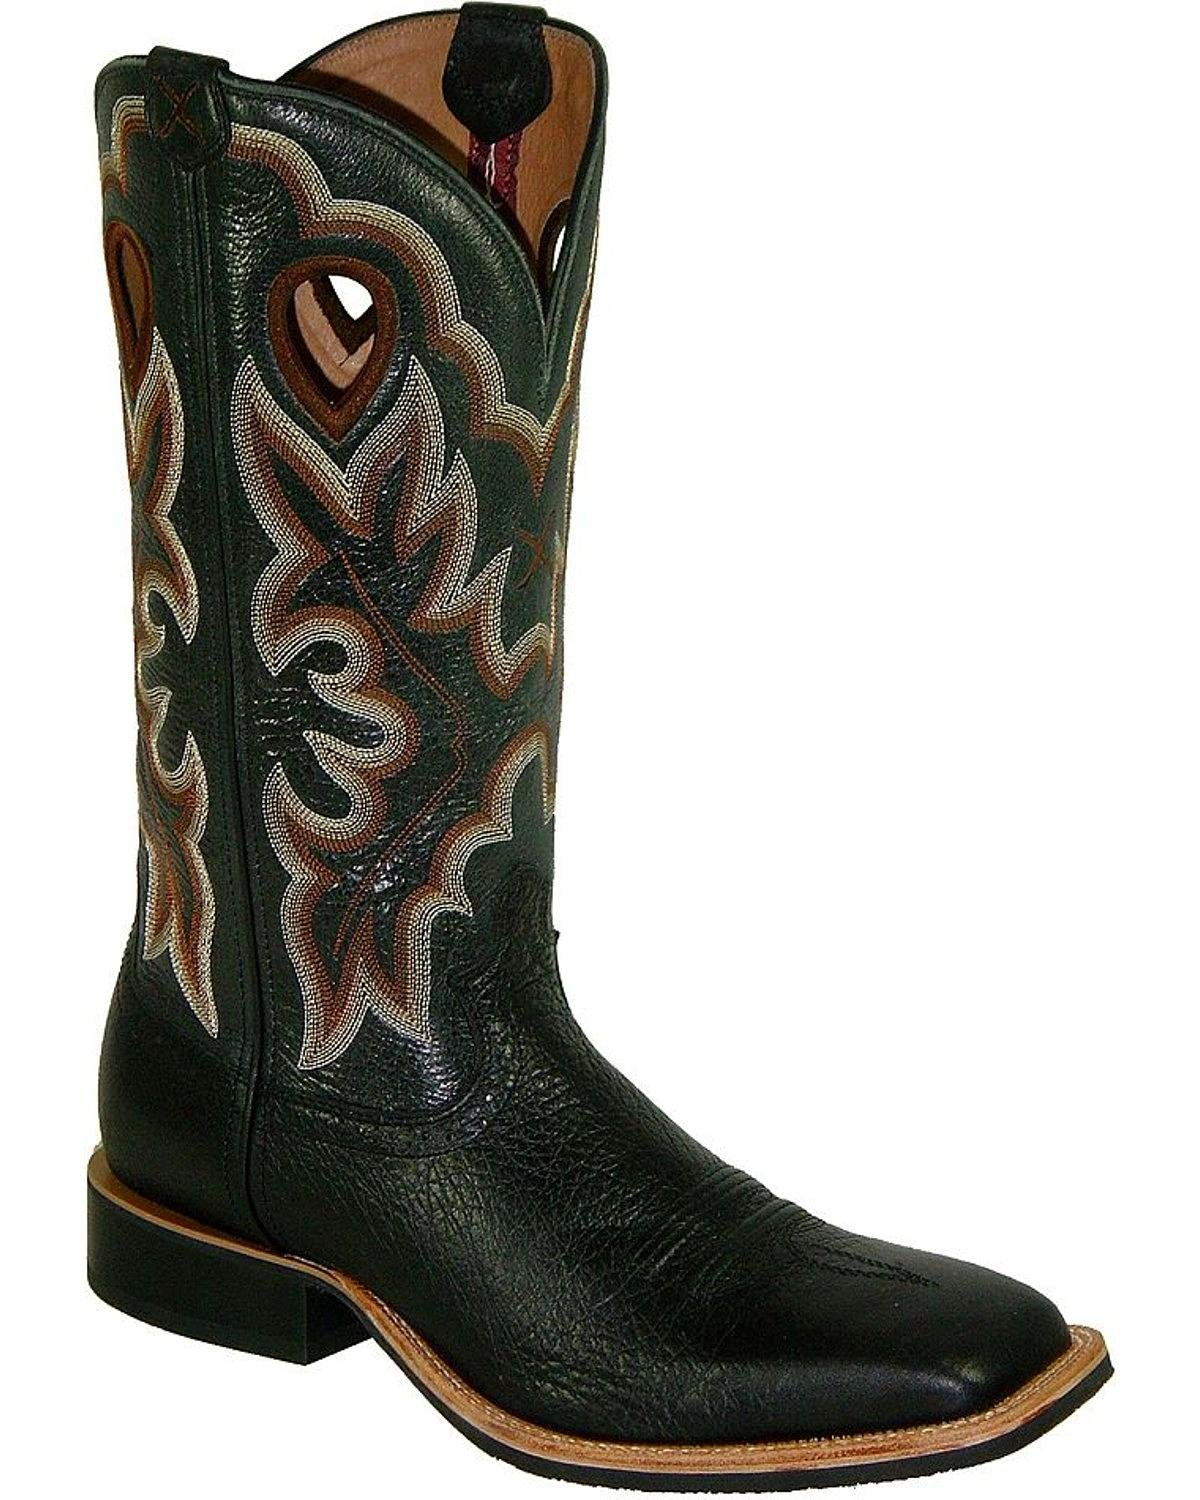 Twisted X Men's Ruff Stock Shoulder Cowboy Boot Square Toe Black 8 D(M) US by Twisted X